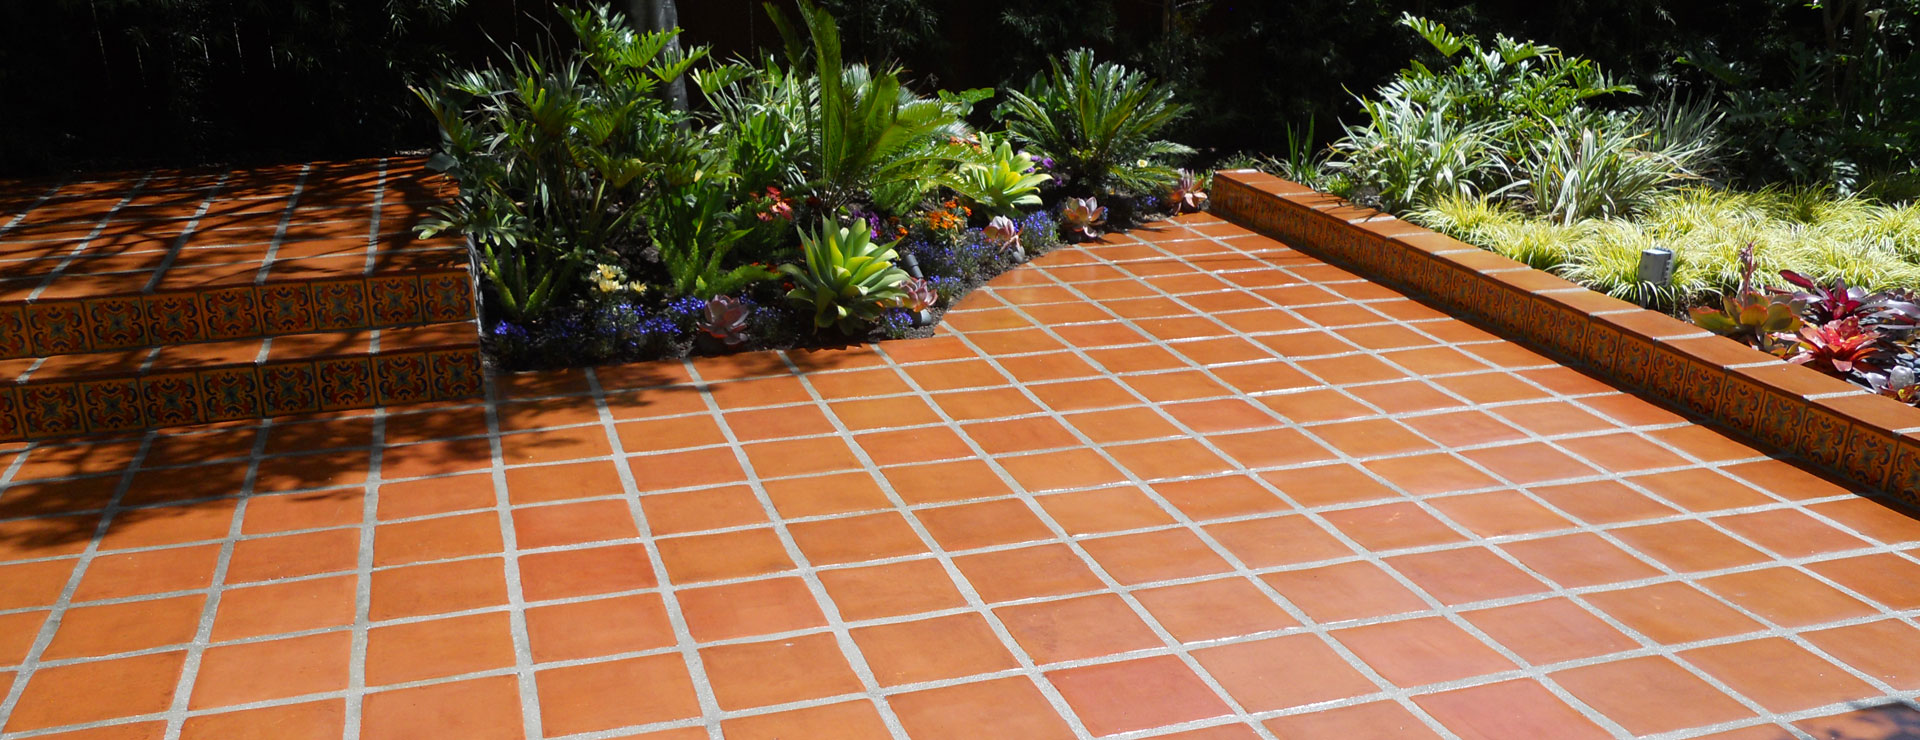 Clay flooring tiles image collections tile flooring design ideas buy ceramic mosaic floor wall tiles for sale shop online the new ideas about clay floor dailygadgetfo Choice Image